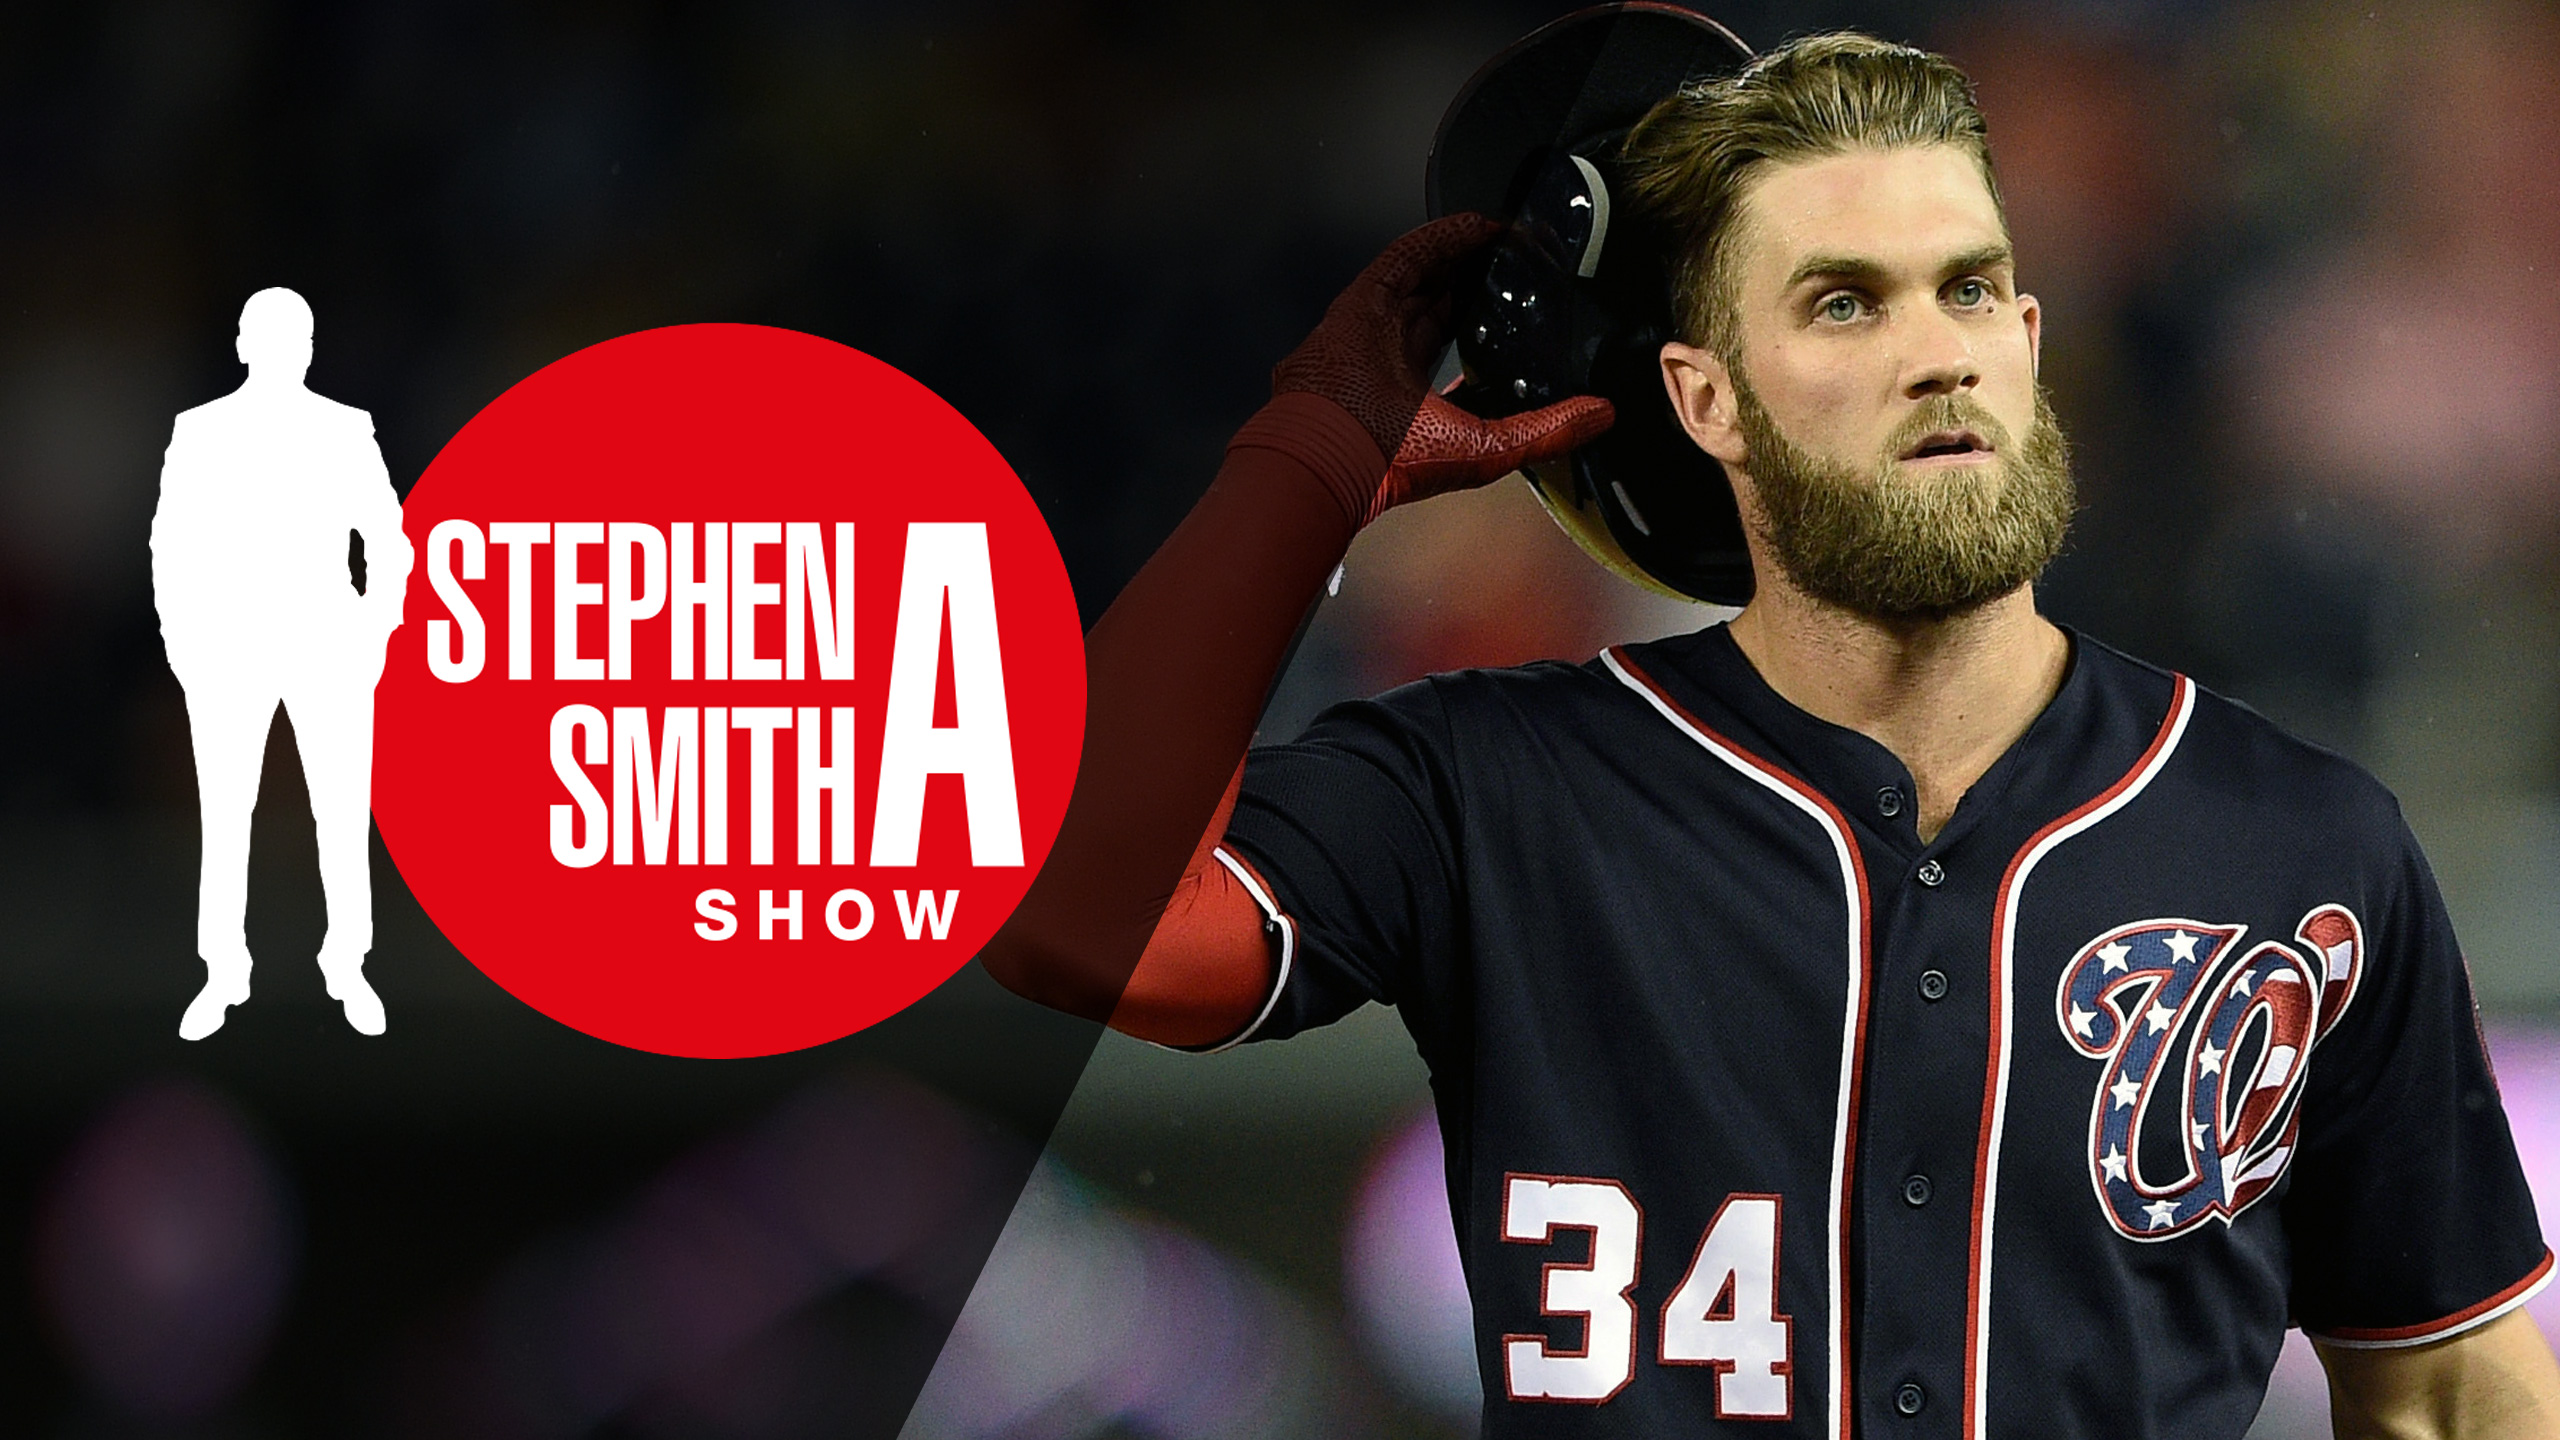 Tue, 12/11 - The Stephen A. Smith Show